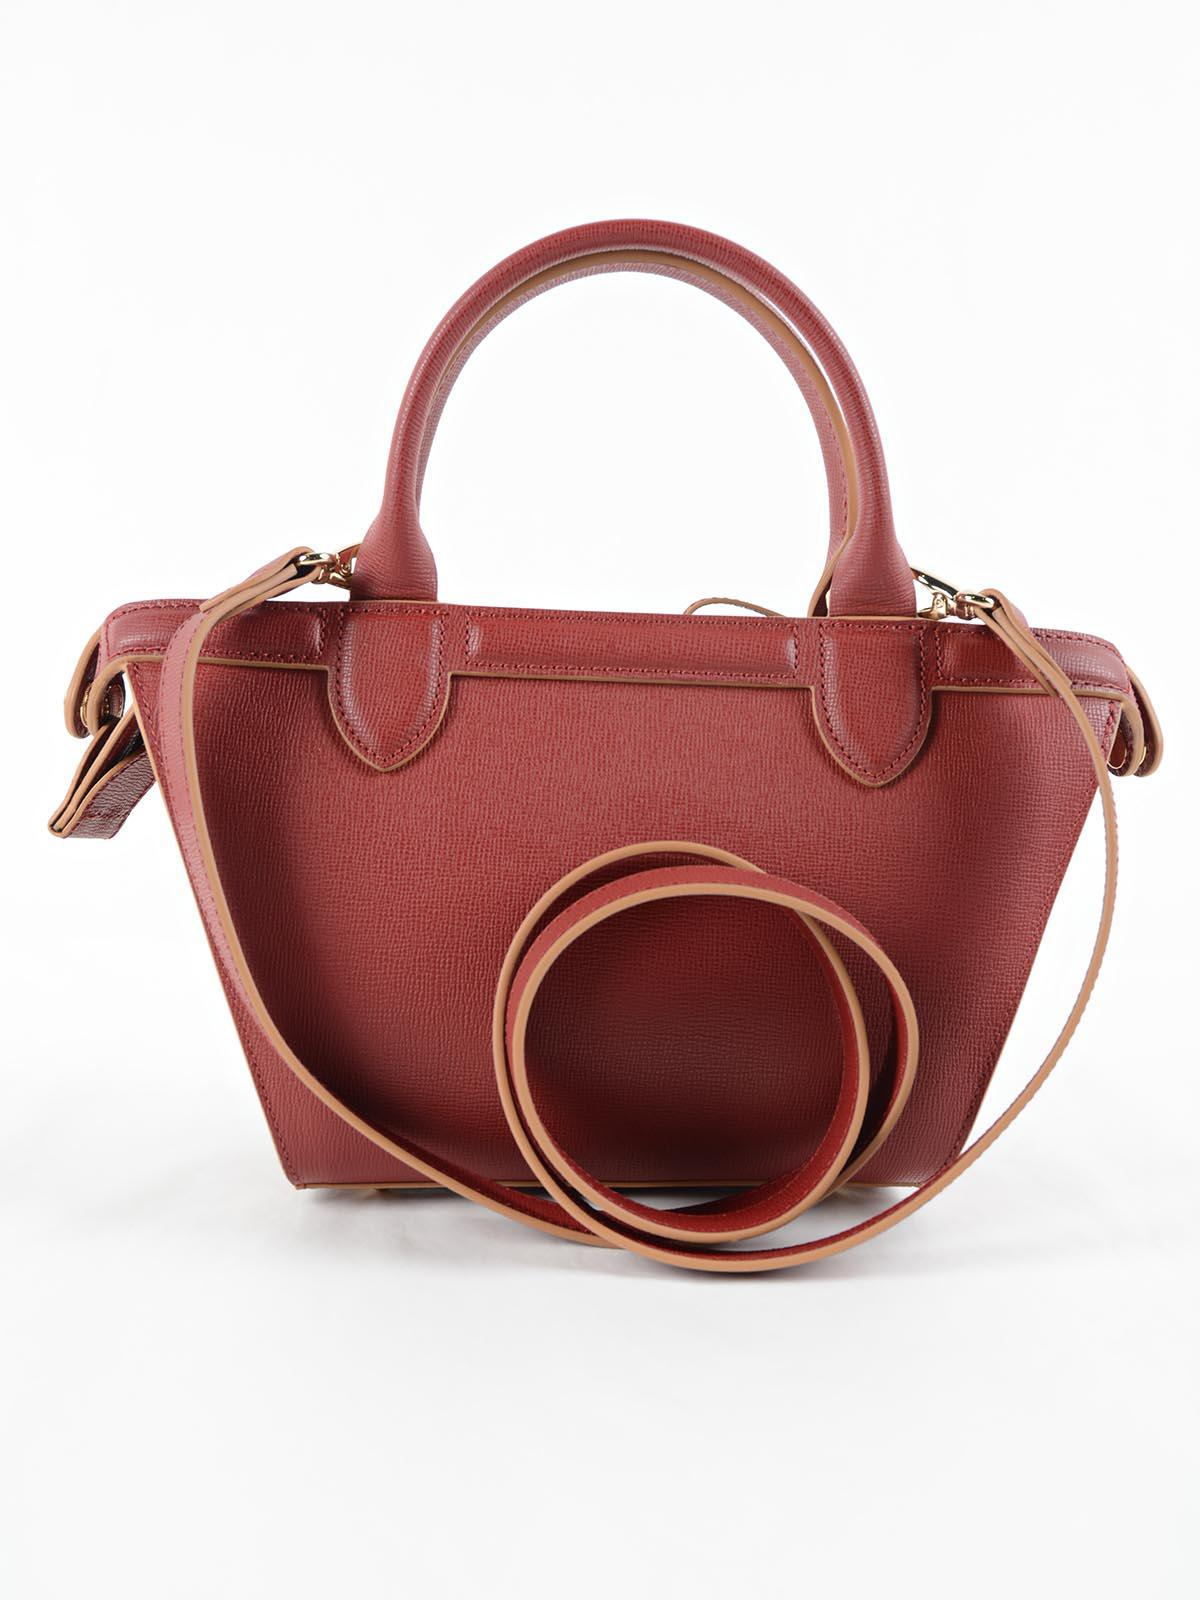 Longchamp Le Pliage Heritage Bag S In Red Lyst Neo Ruby Sz Small Gallery